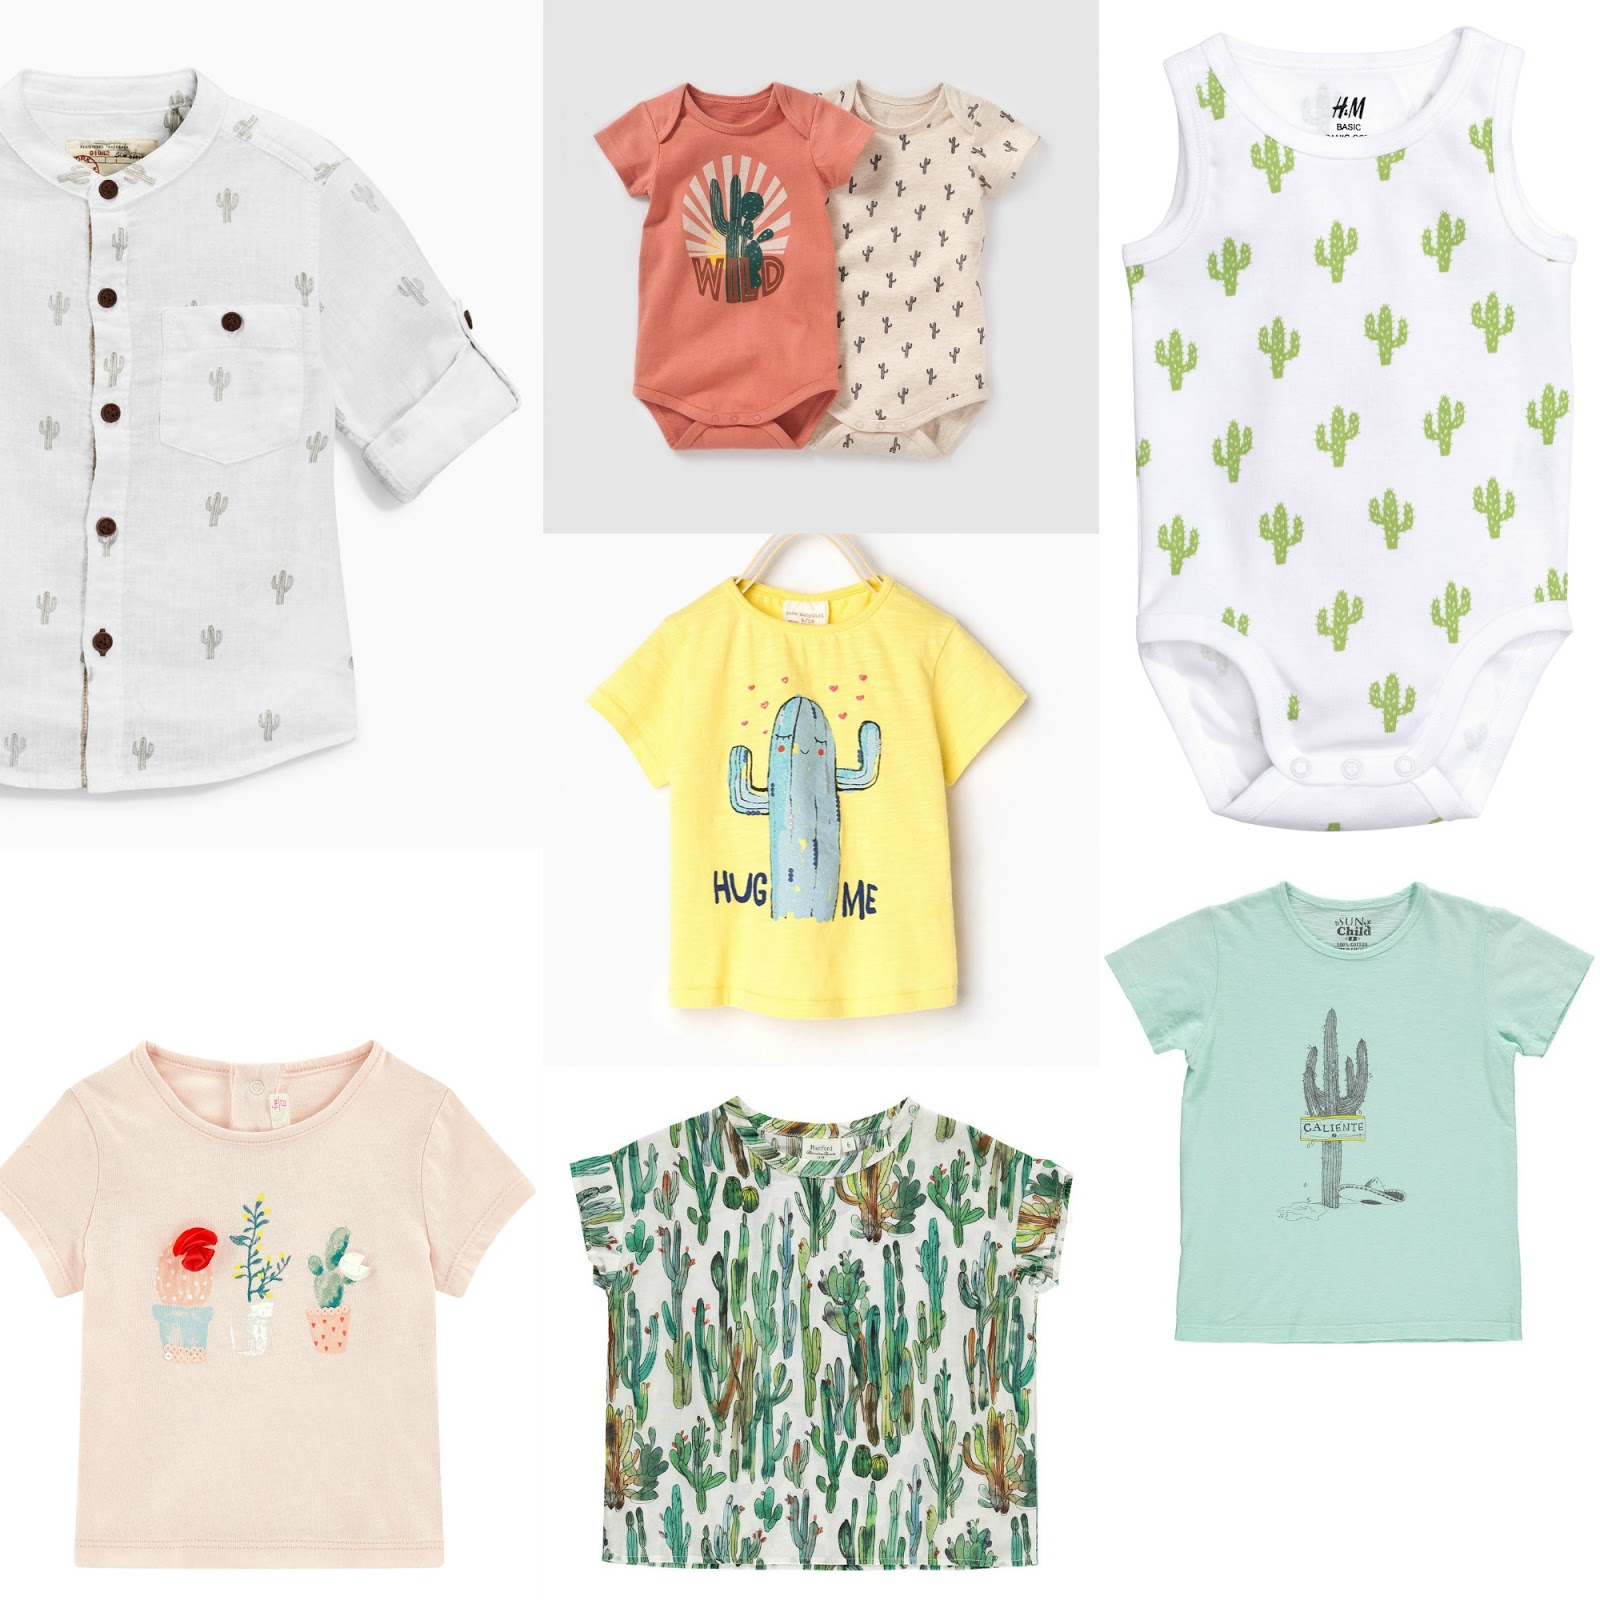 mamasVIB | V. I. BUYS: Cool as a…Cactus! The only trend little ones should pick this spring